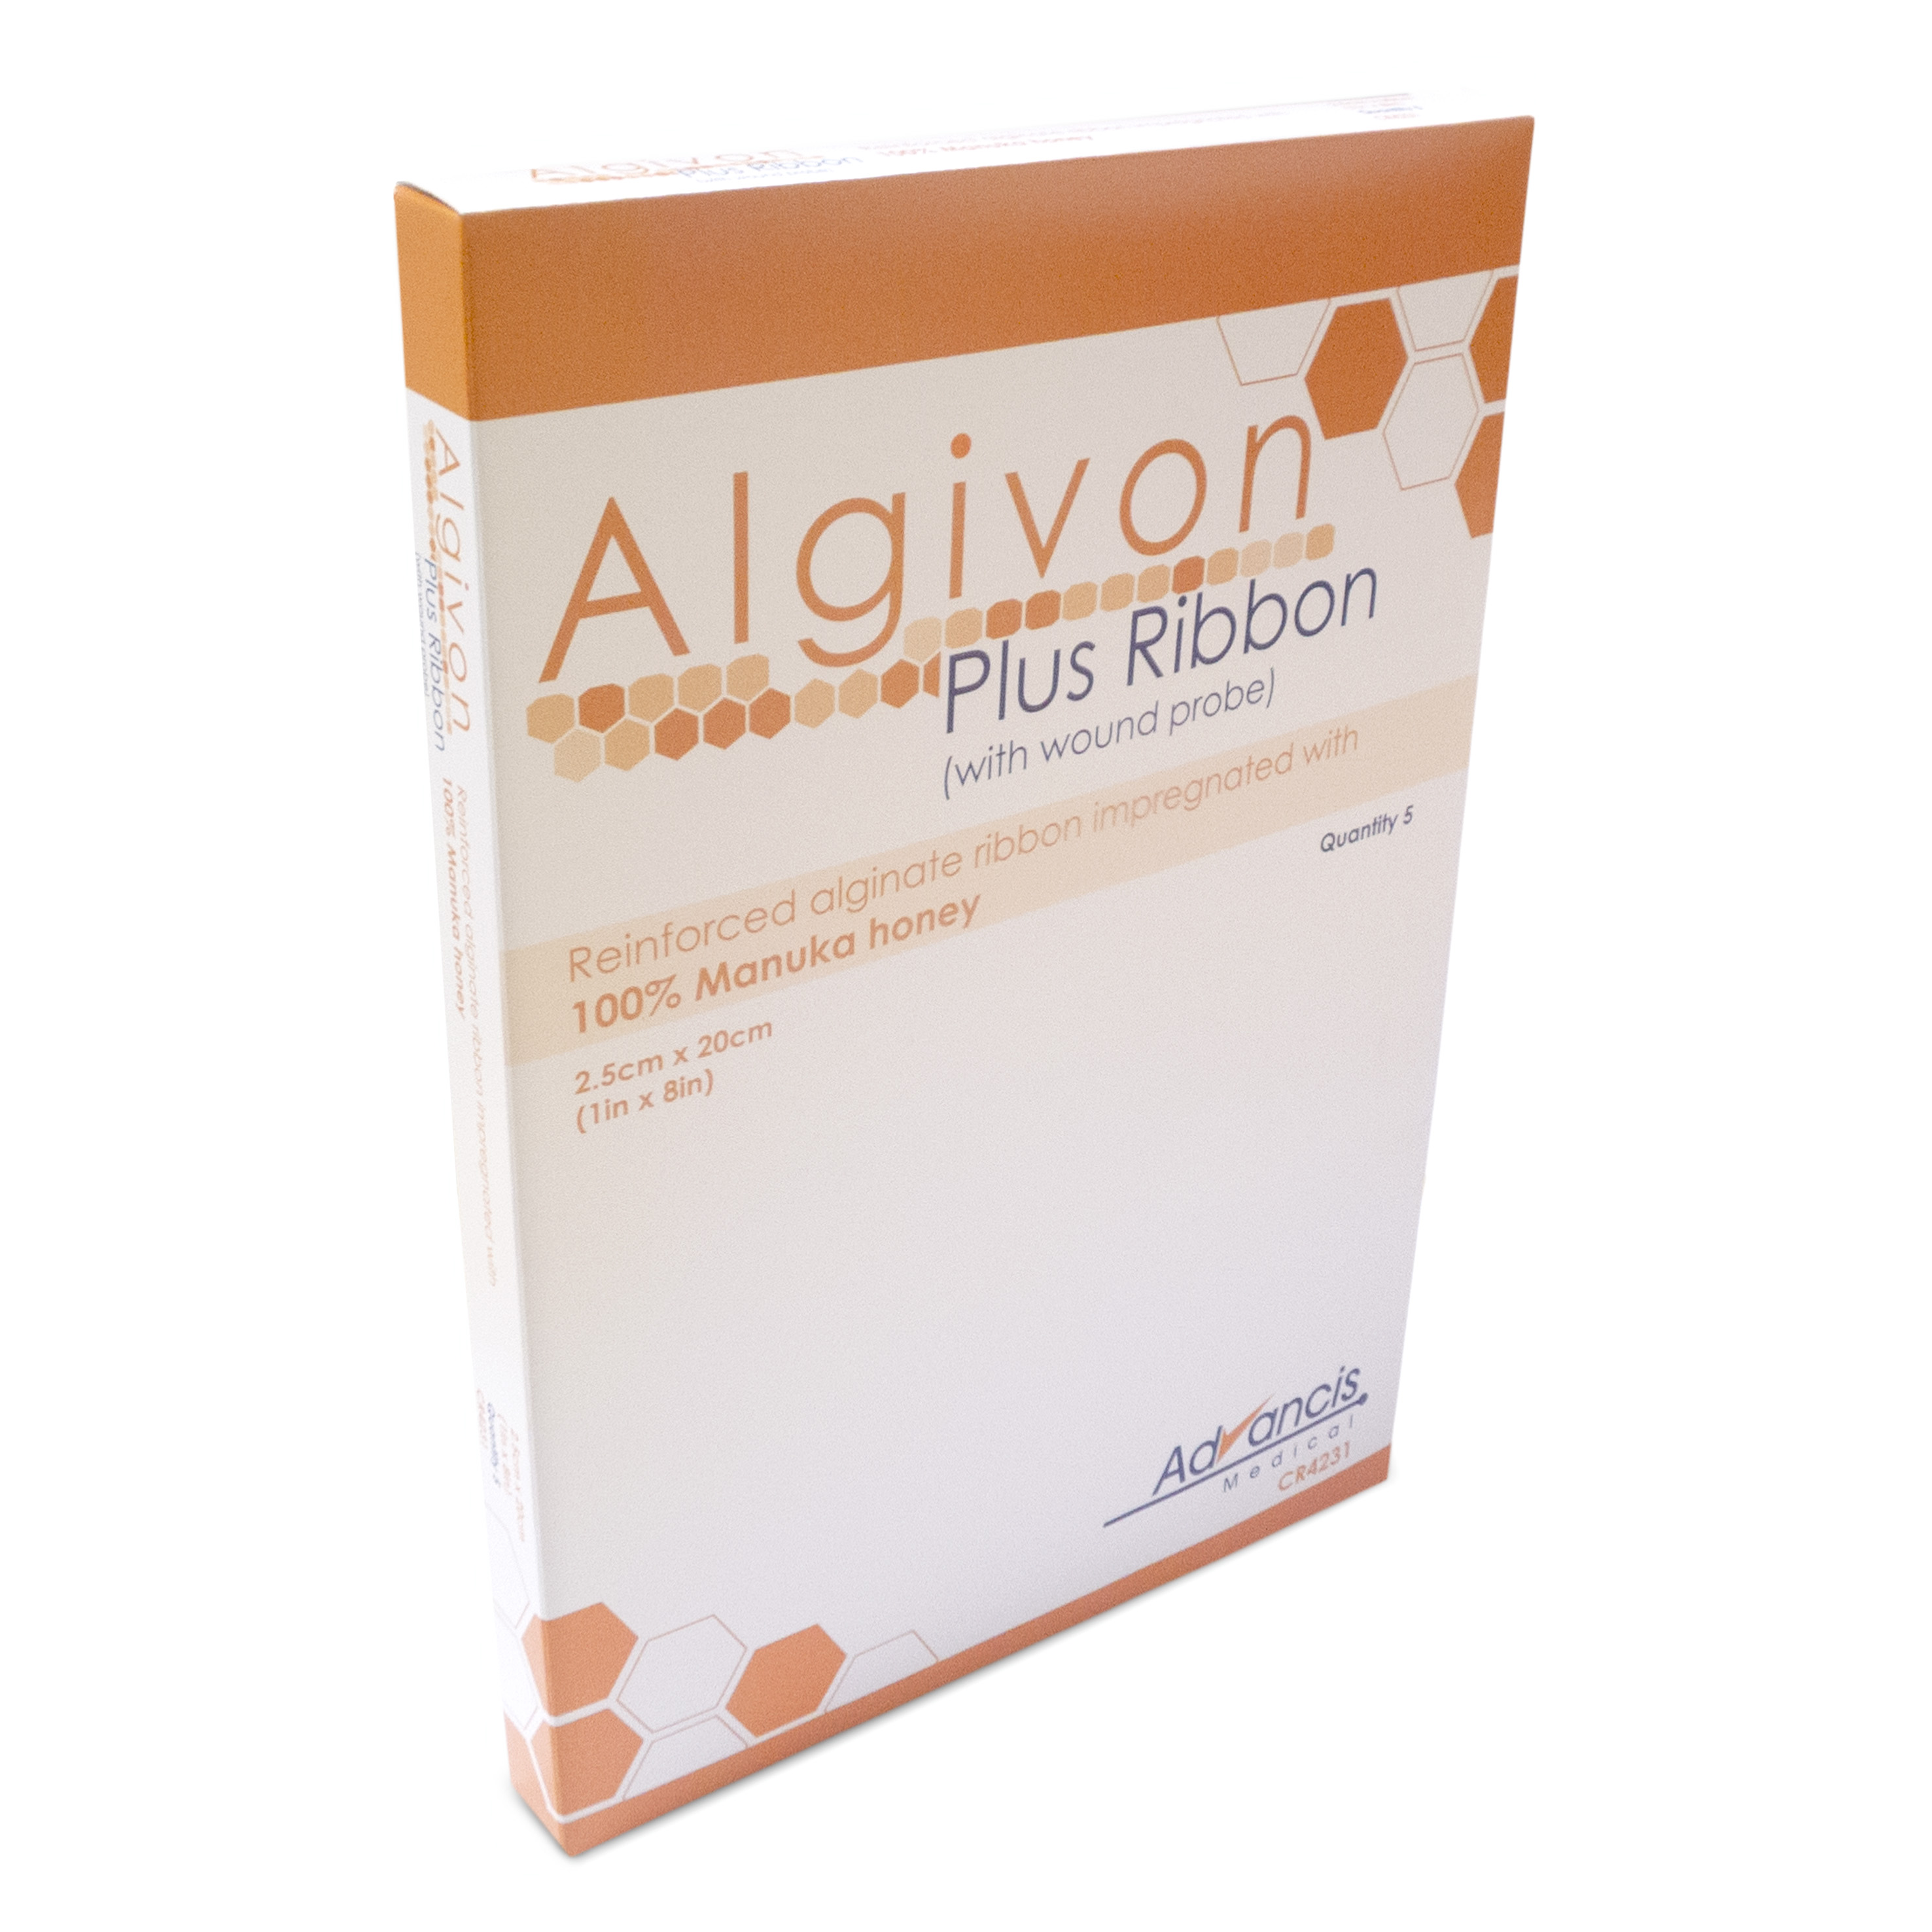 Algivon Plus Ribbon